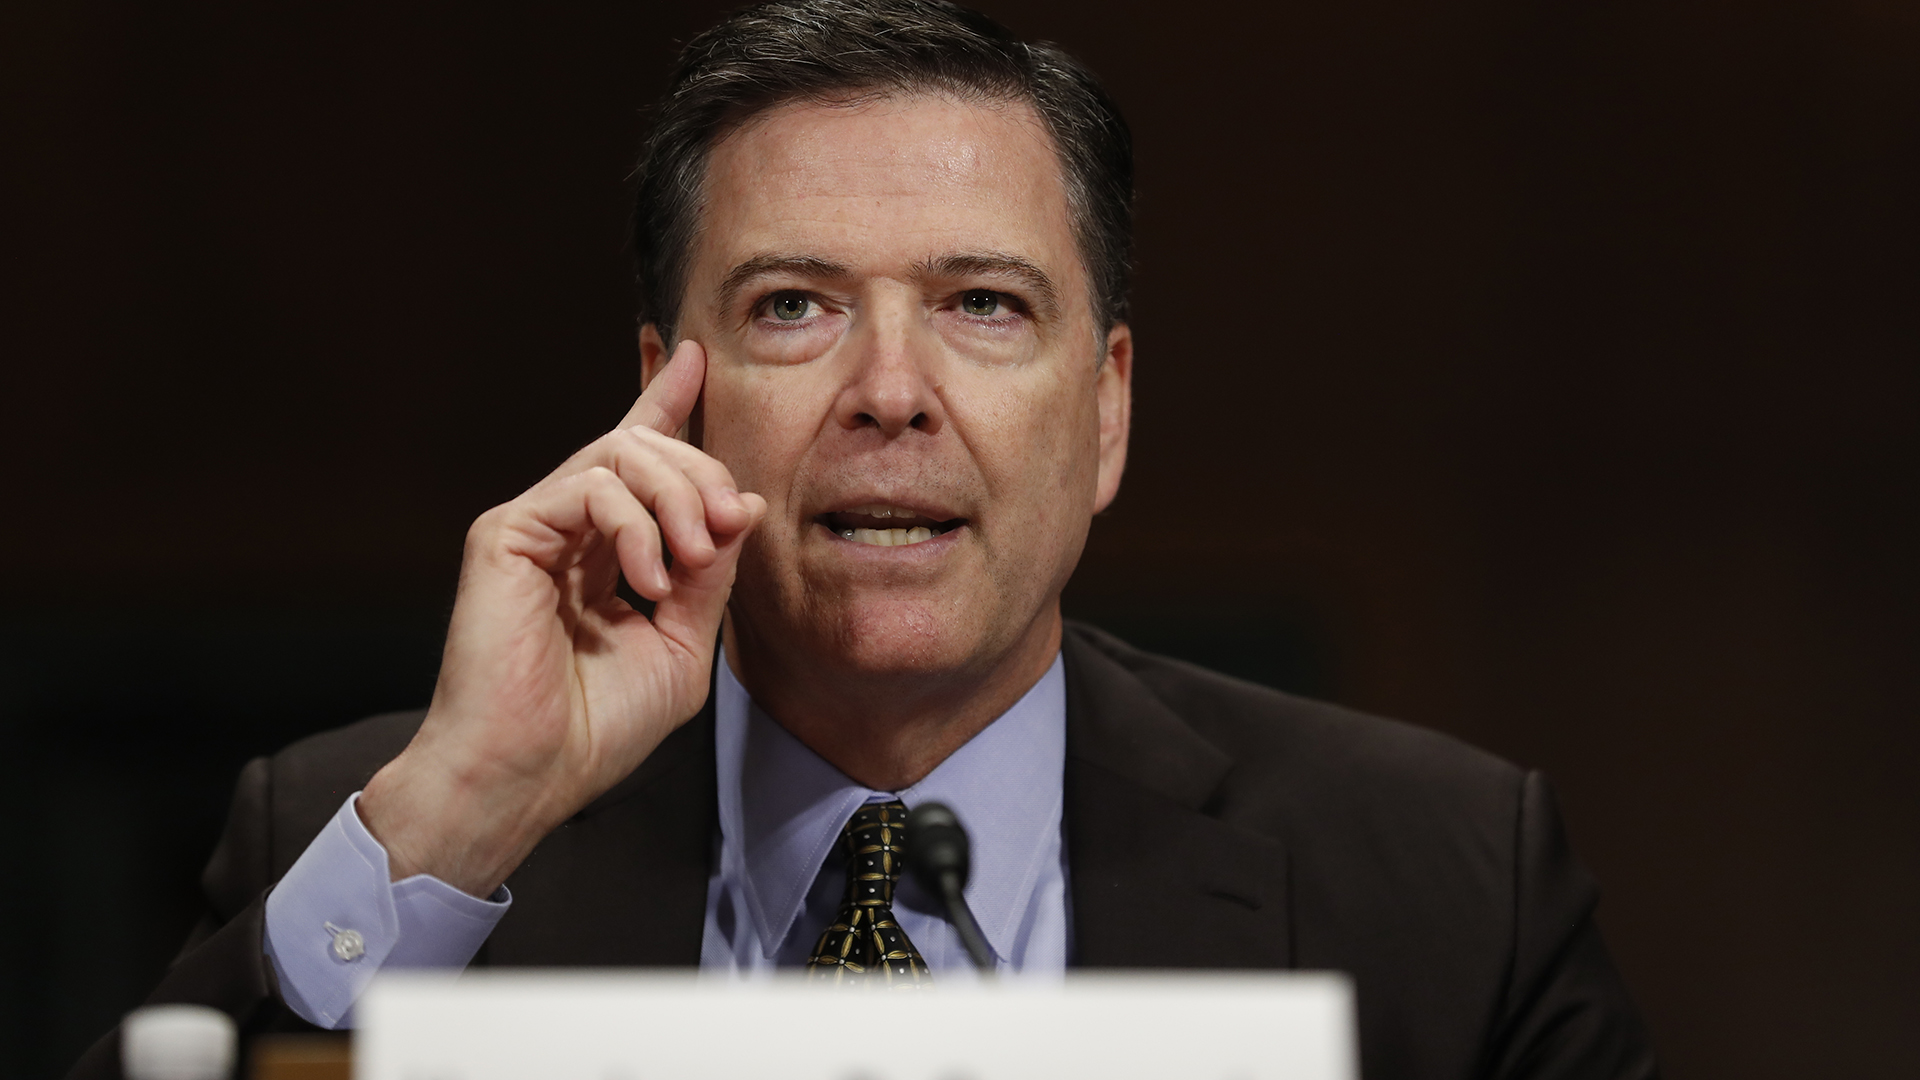 Read the full testimony of FBI Director James Comey in which he discusses Clinton email investigation